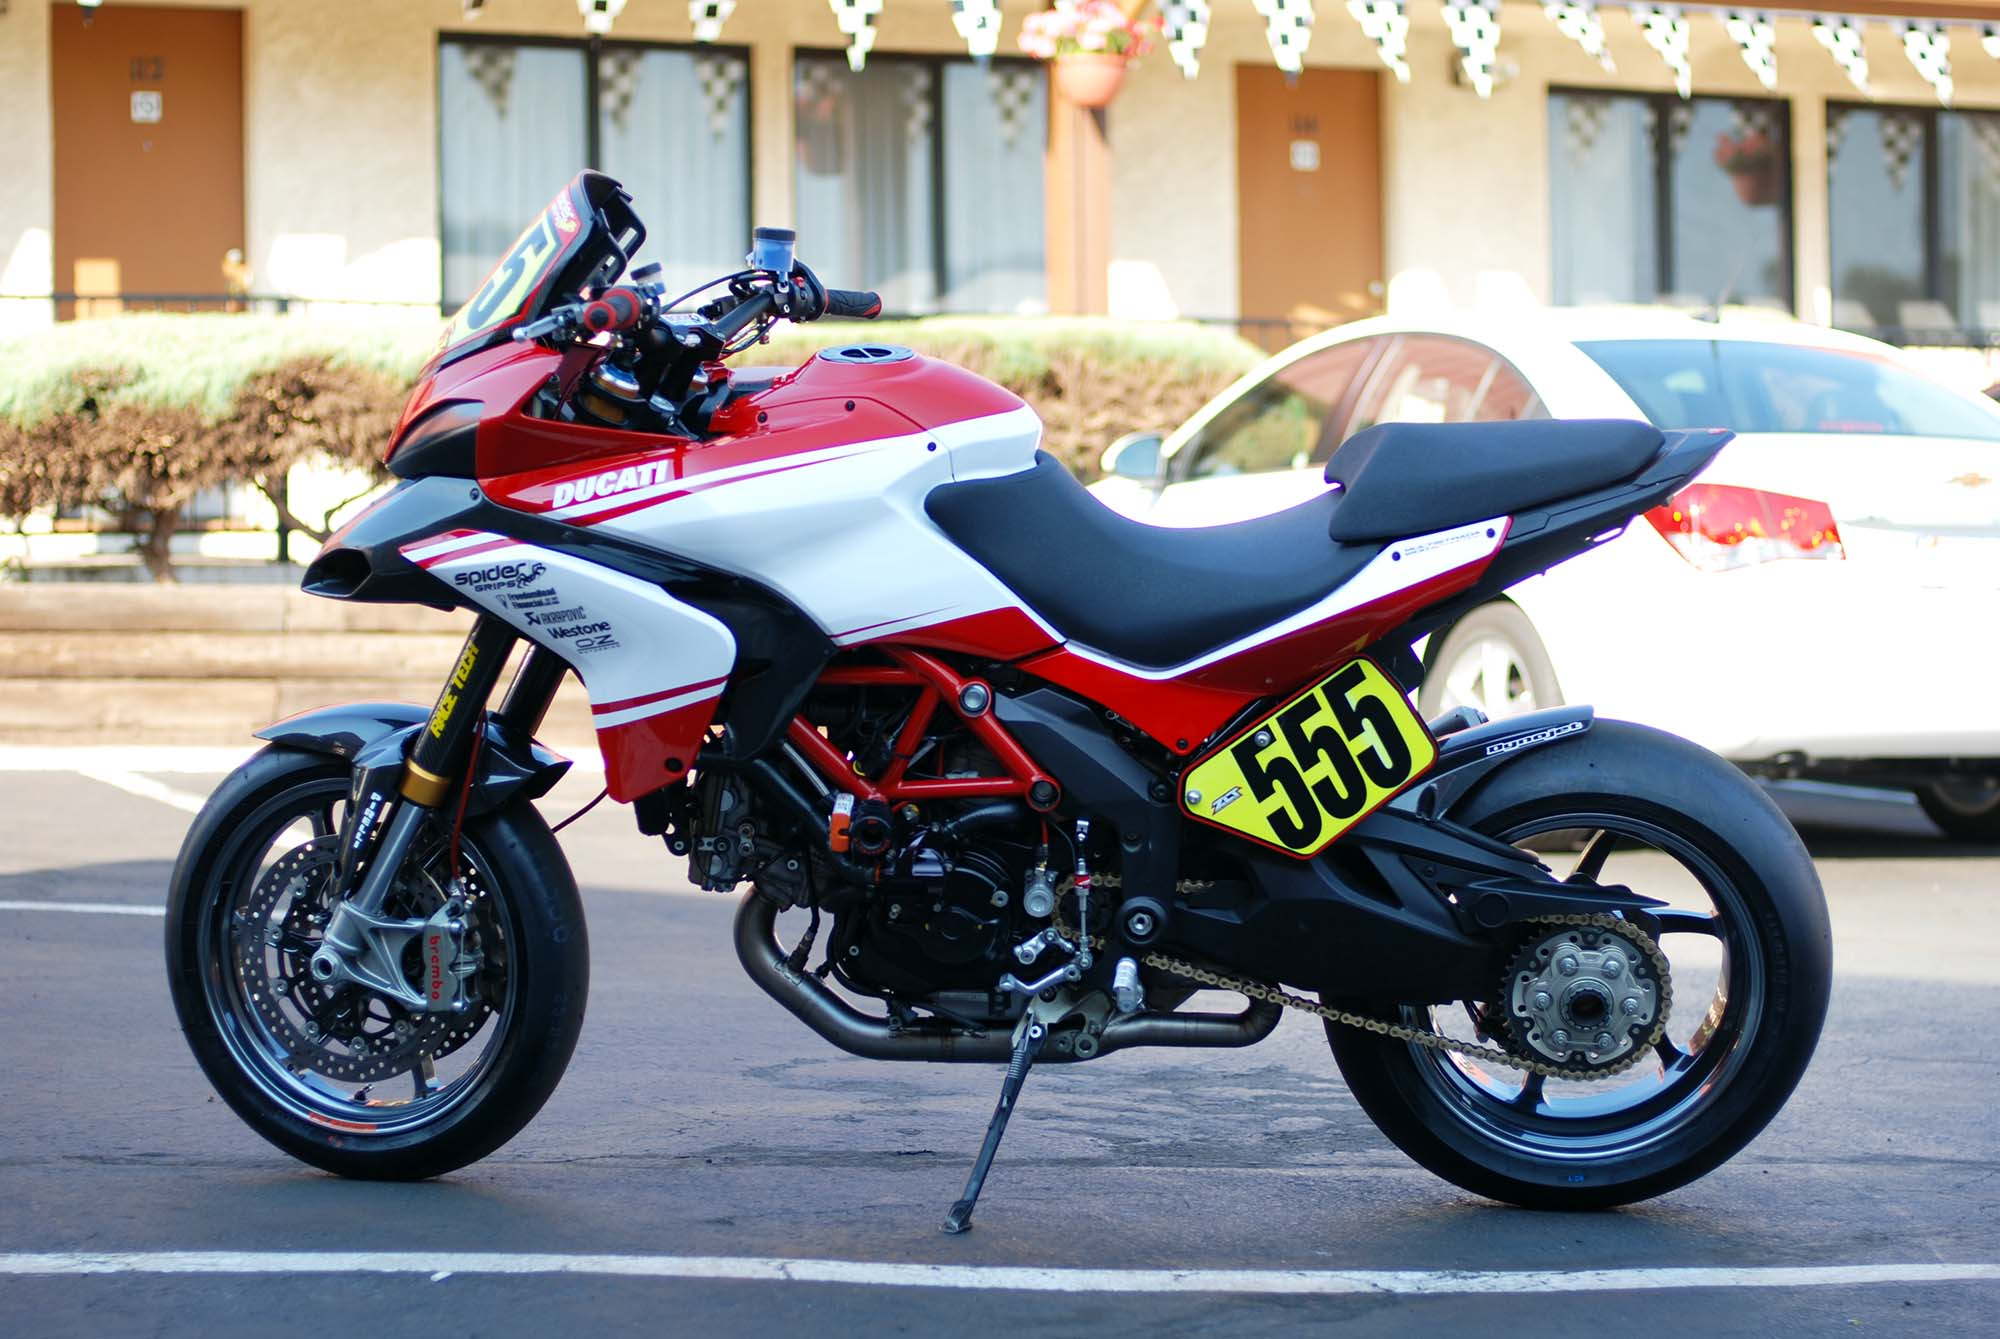 2012 Ducati Multistrada 1200 S Pikes Peak Race Bike ...